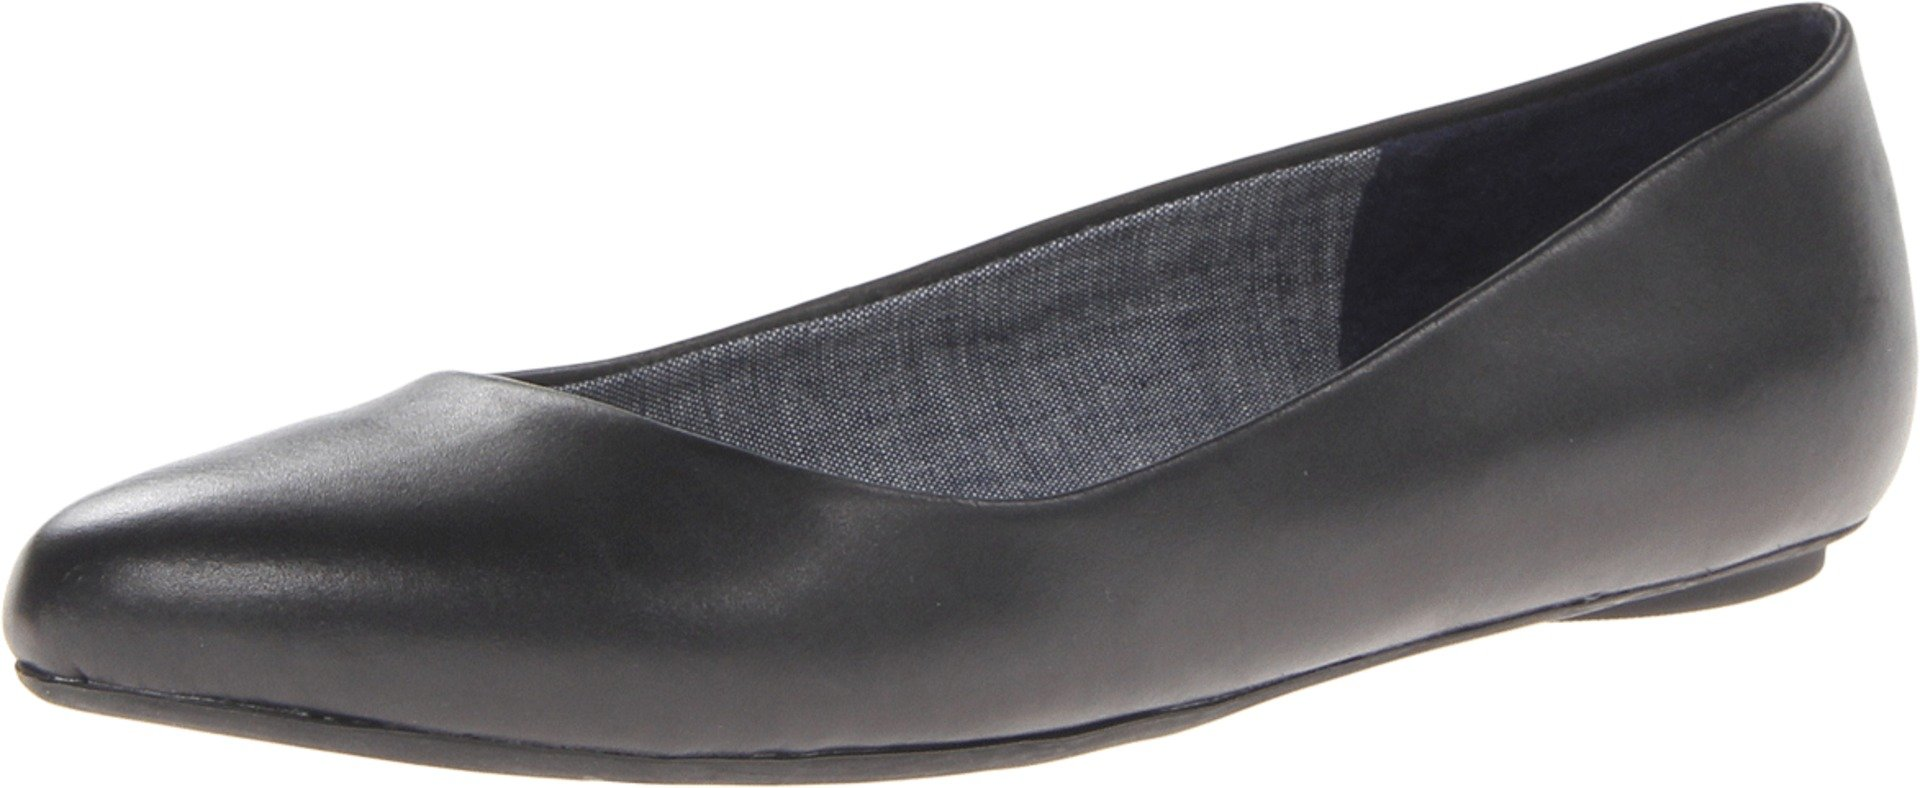 Dr. Scholl's Women's Black Flat  Shoes - 8.5 B(M) US